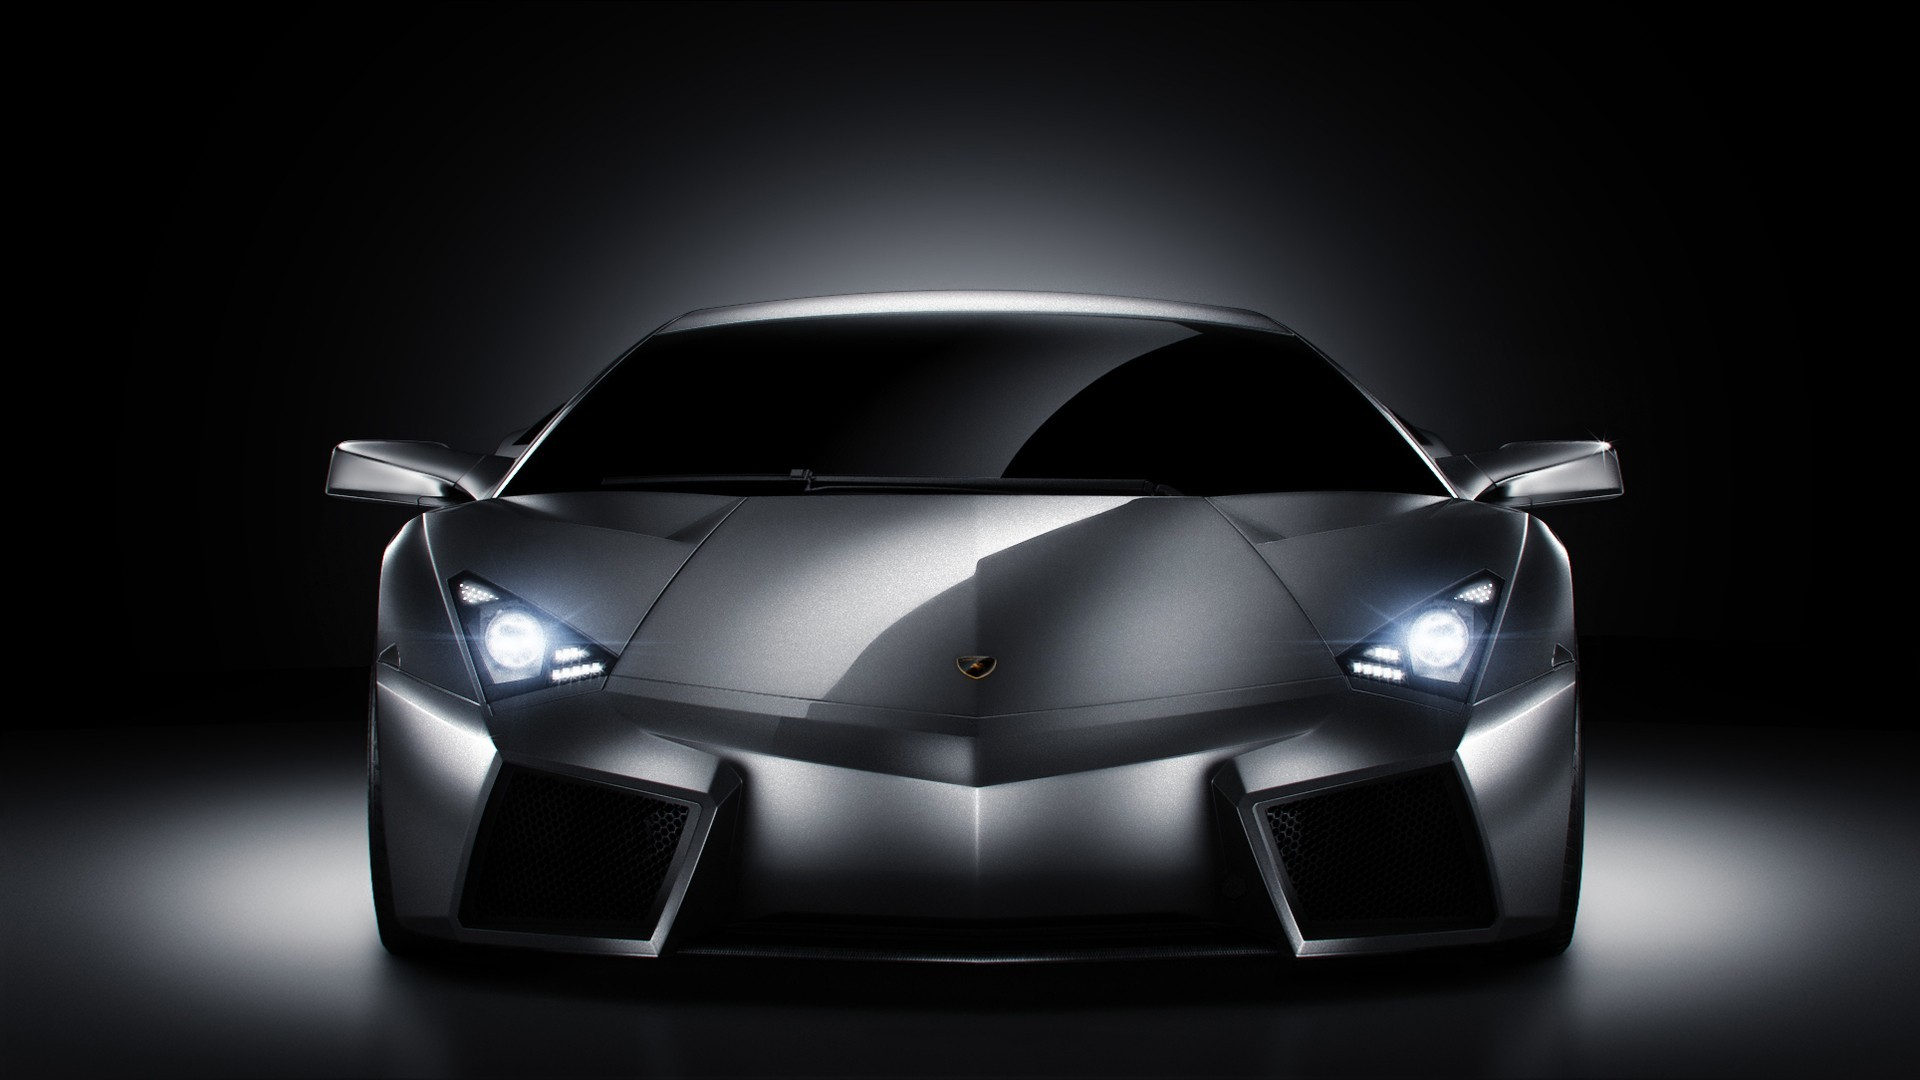 cars vehicles Lamborghini Reventon HD Wallpaper